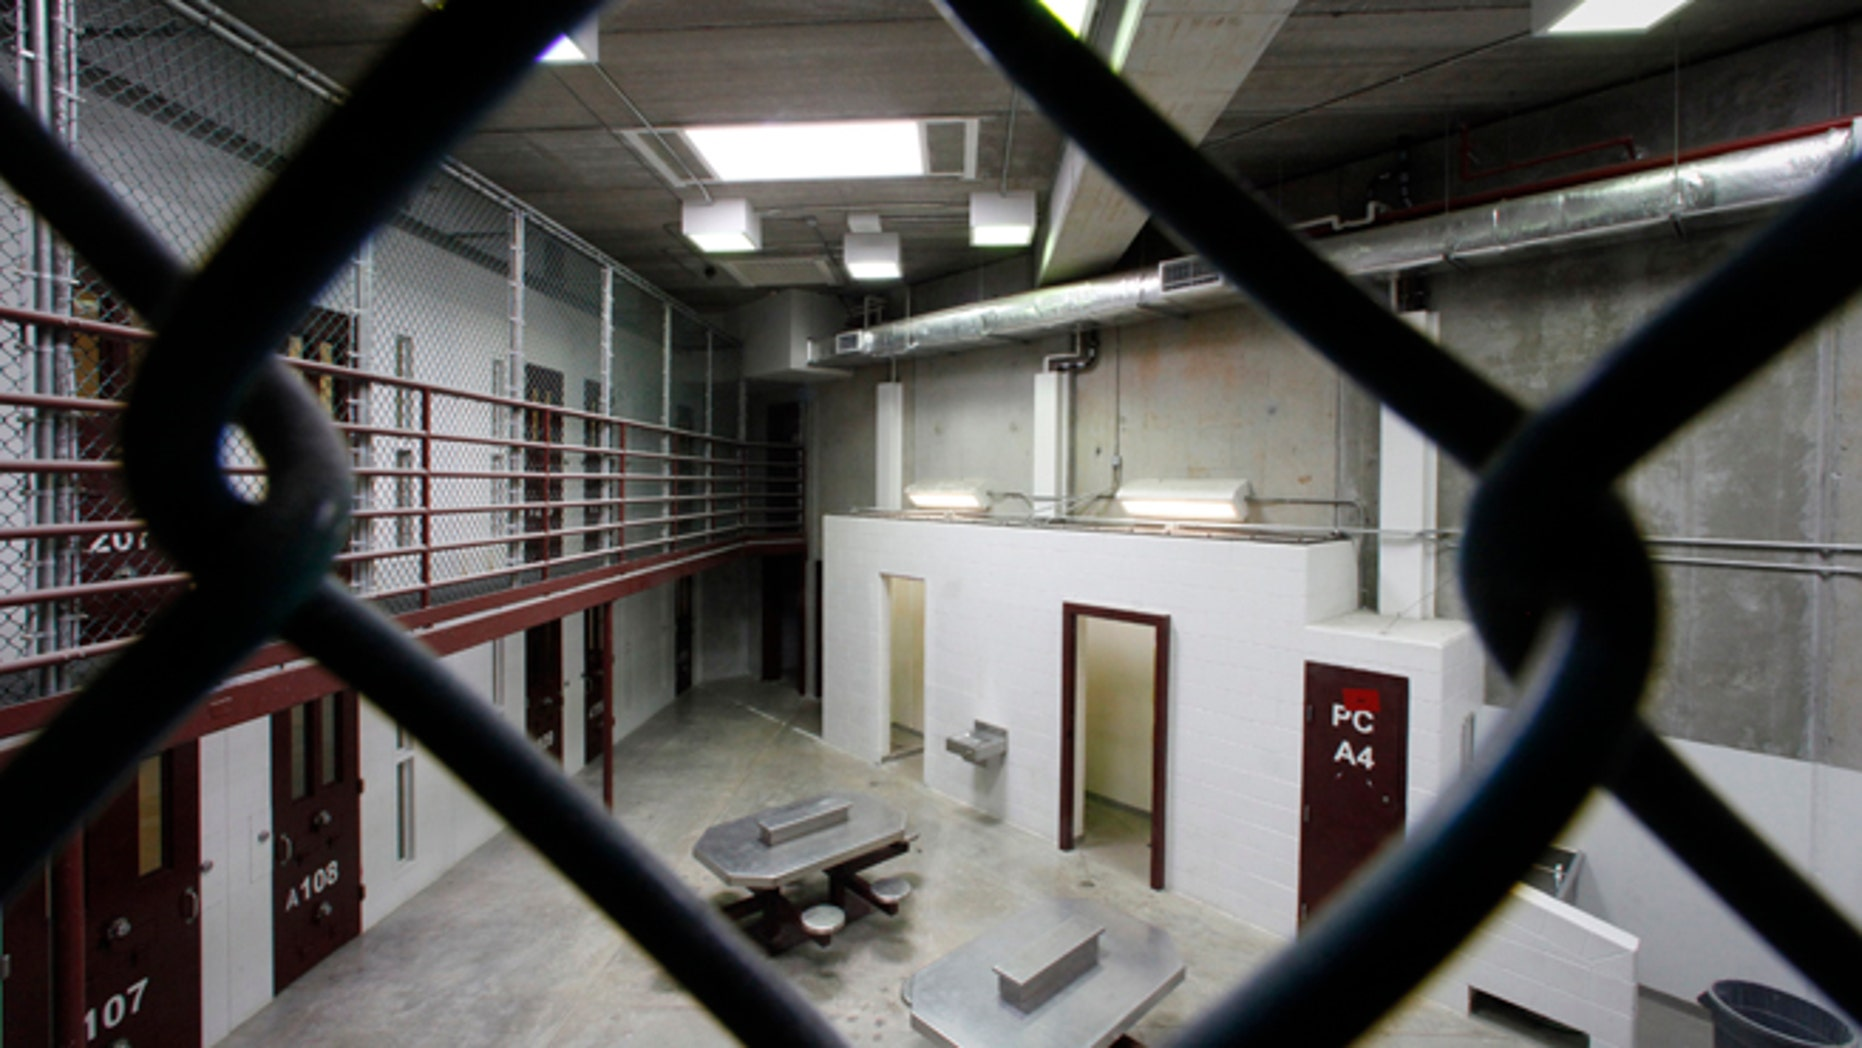 The interior of an unoccupied communal cellblock is seen at Camp VI, a prison used to house detainees at the U.S. Naval Base at Guantanamo Bay.